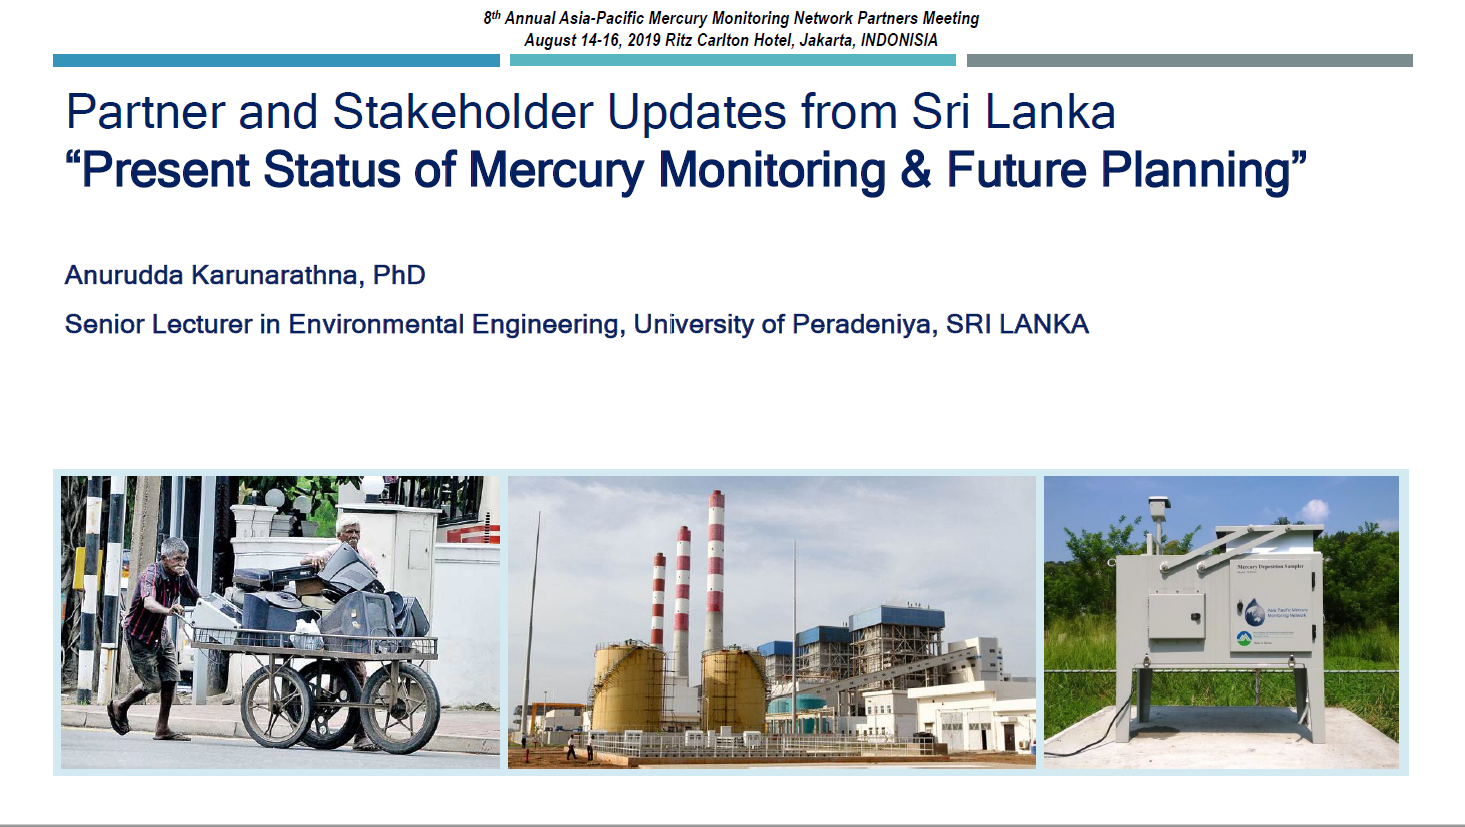 First page of Updates from Sri Lanka - Present Status of Mercury Monitoring & Future Planning